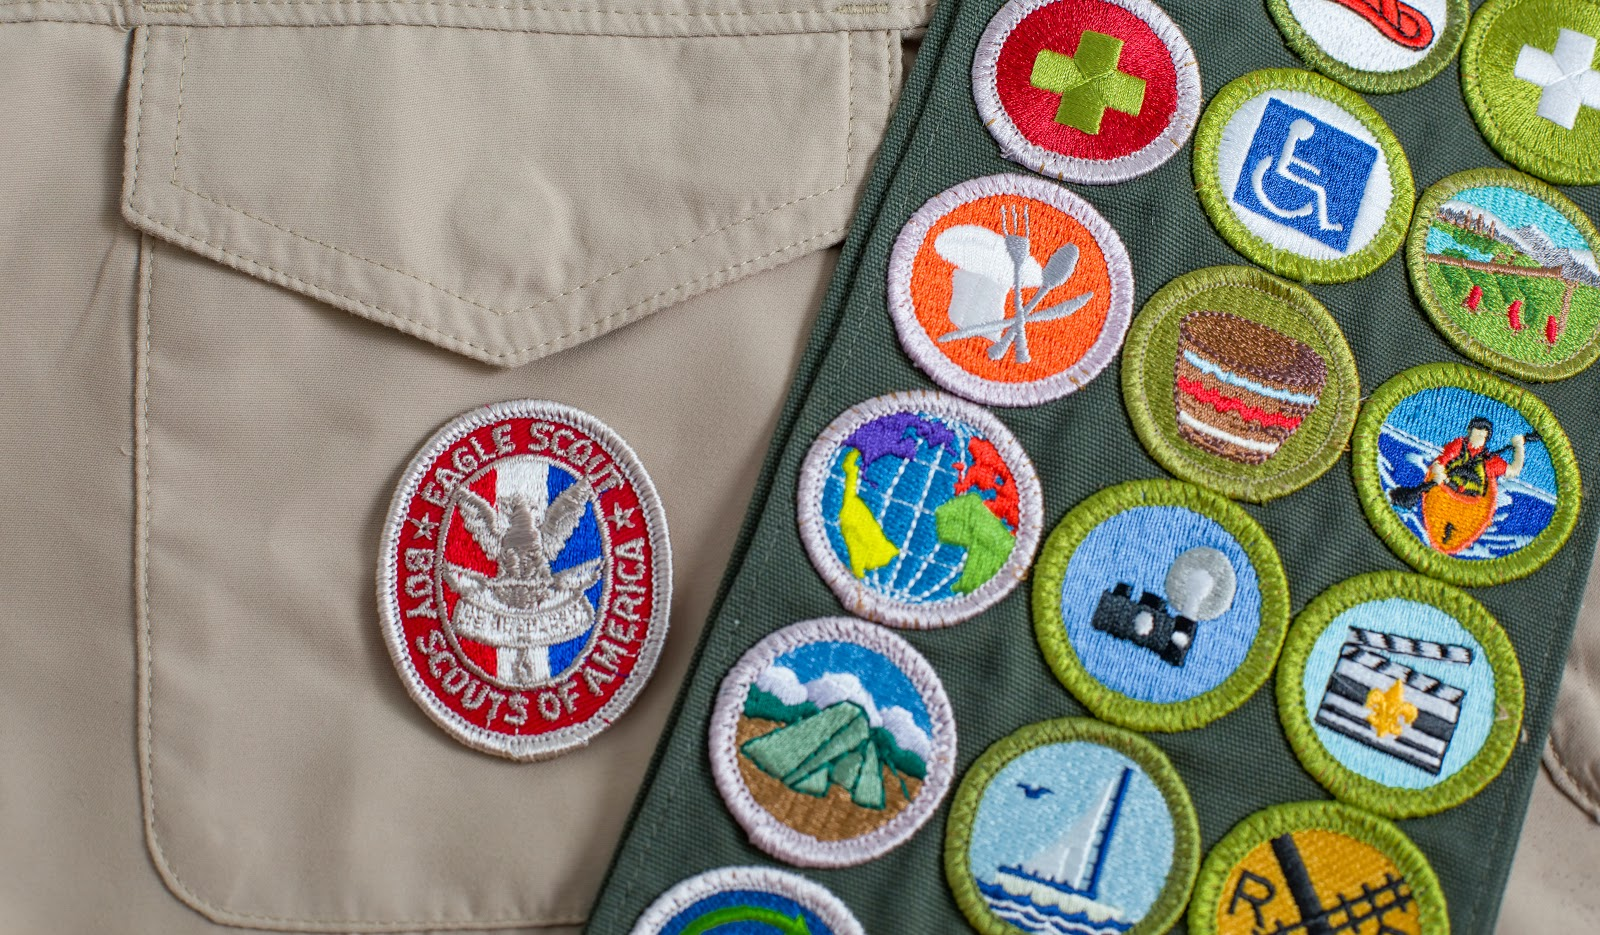 Eagle Scout Invitations: Uniform with badges